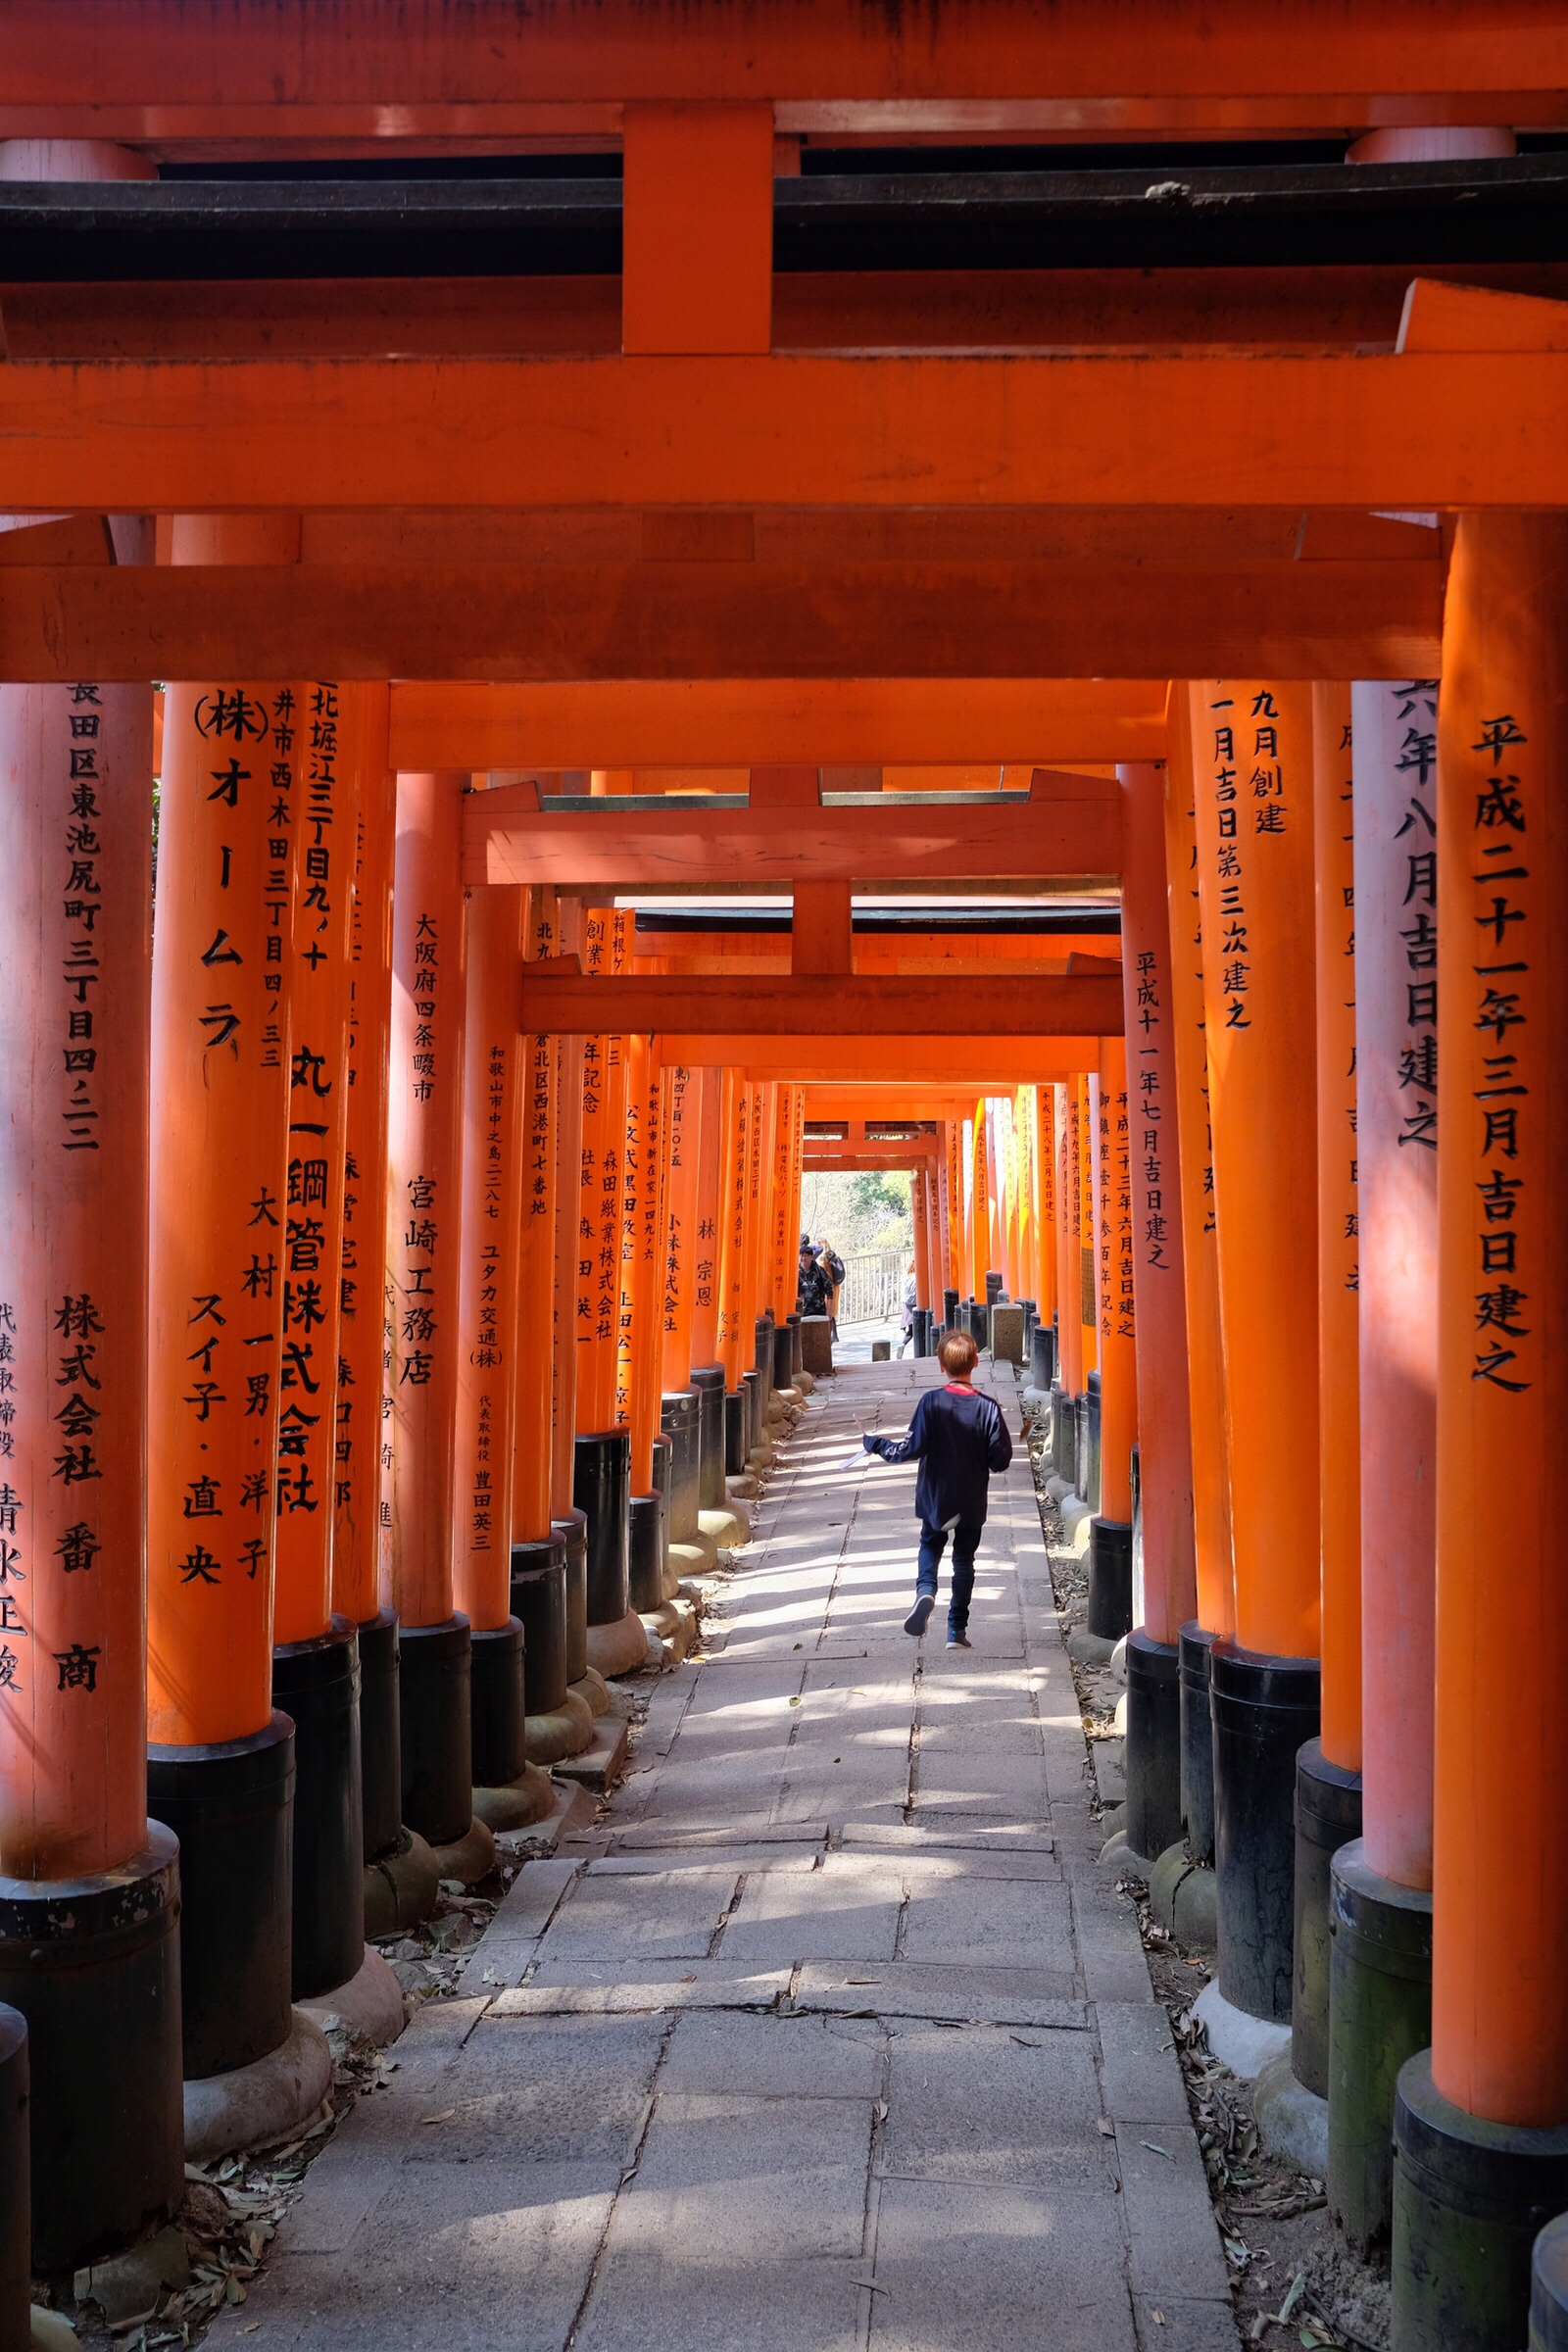 Japan - Kyoto - Fushimi Inari Taisha - Walking